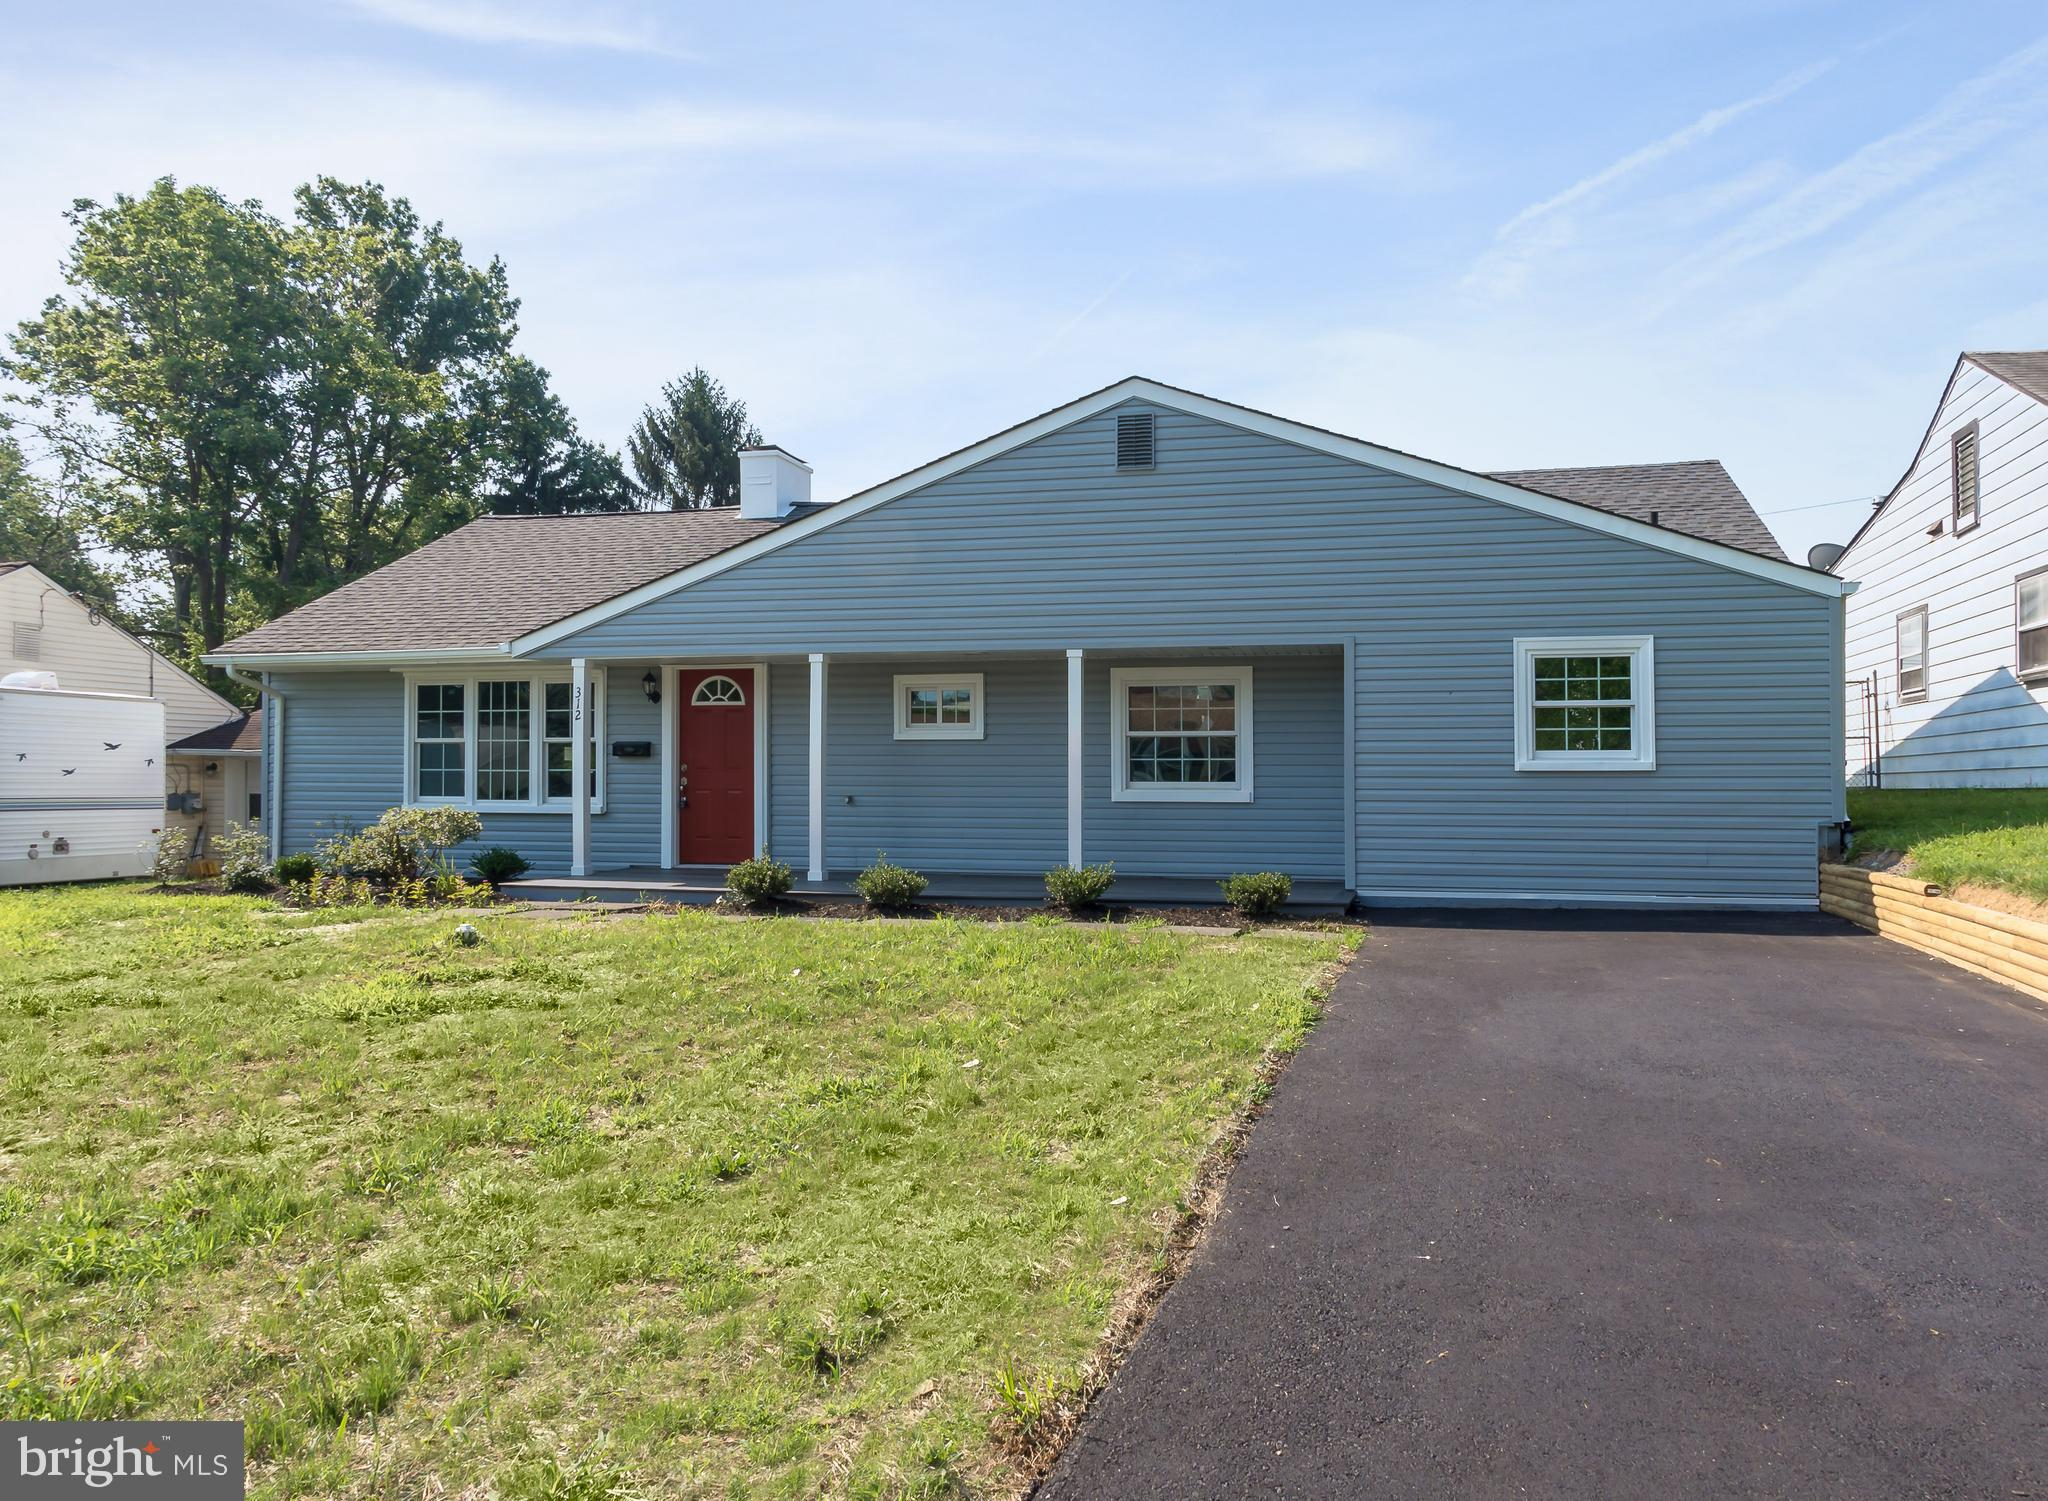 312 BERKSHIRE ROAD, FAIRLESS HILLS, PA 19030